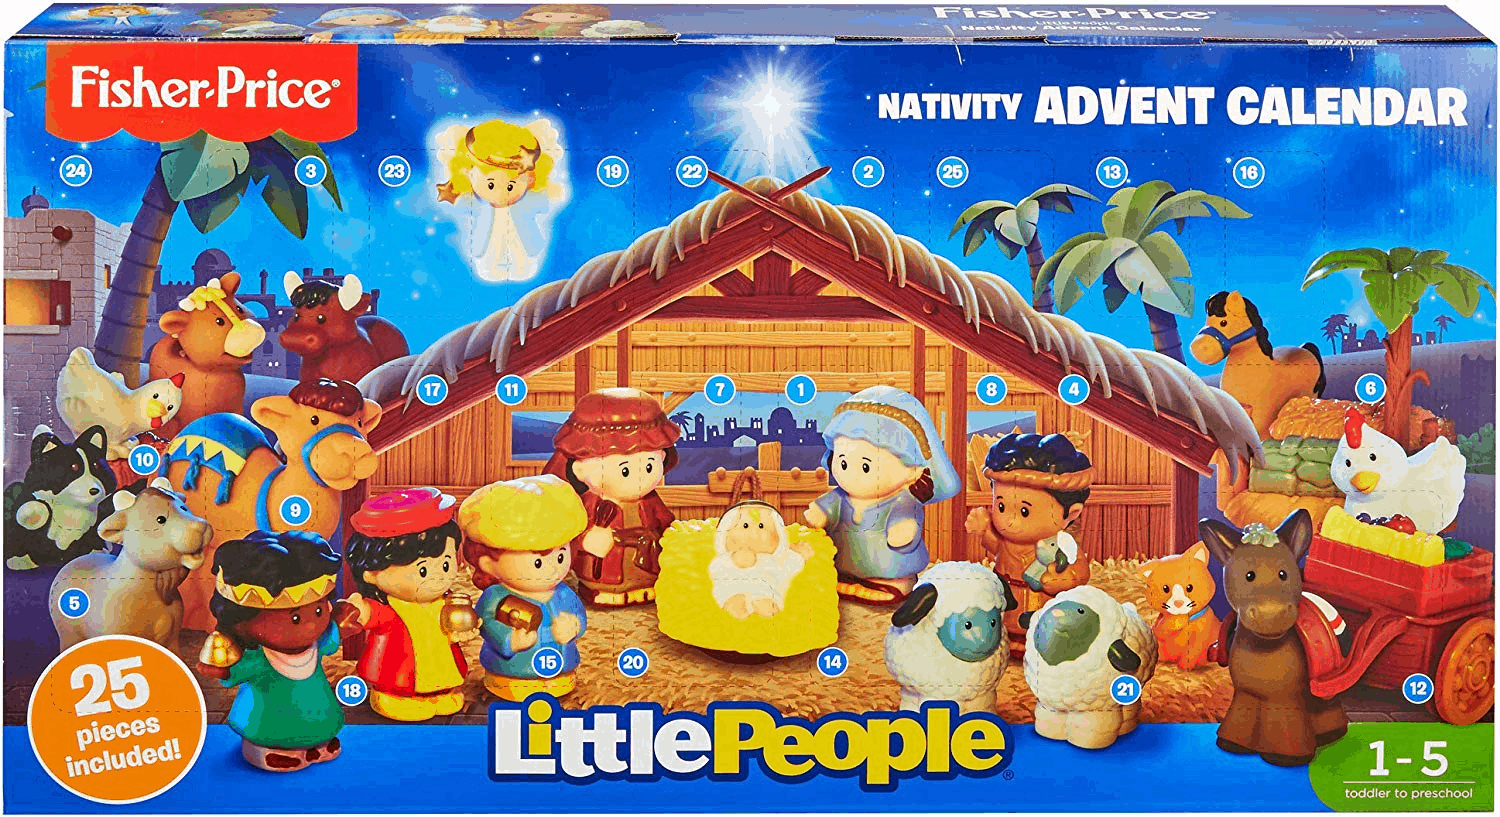 Little People Nativity Advent Calendar $24.99 TODAY ONLY!